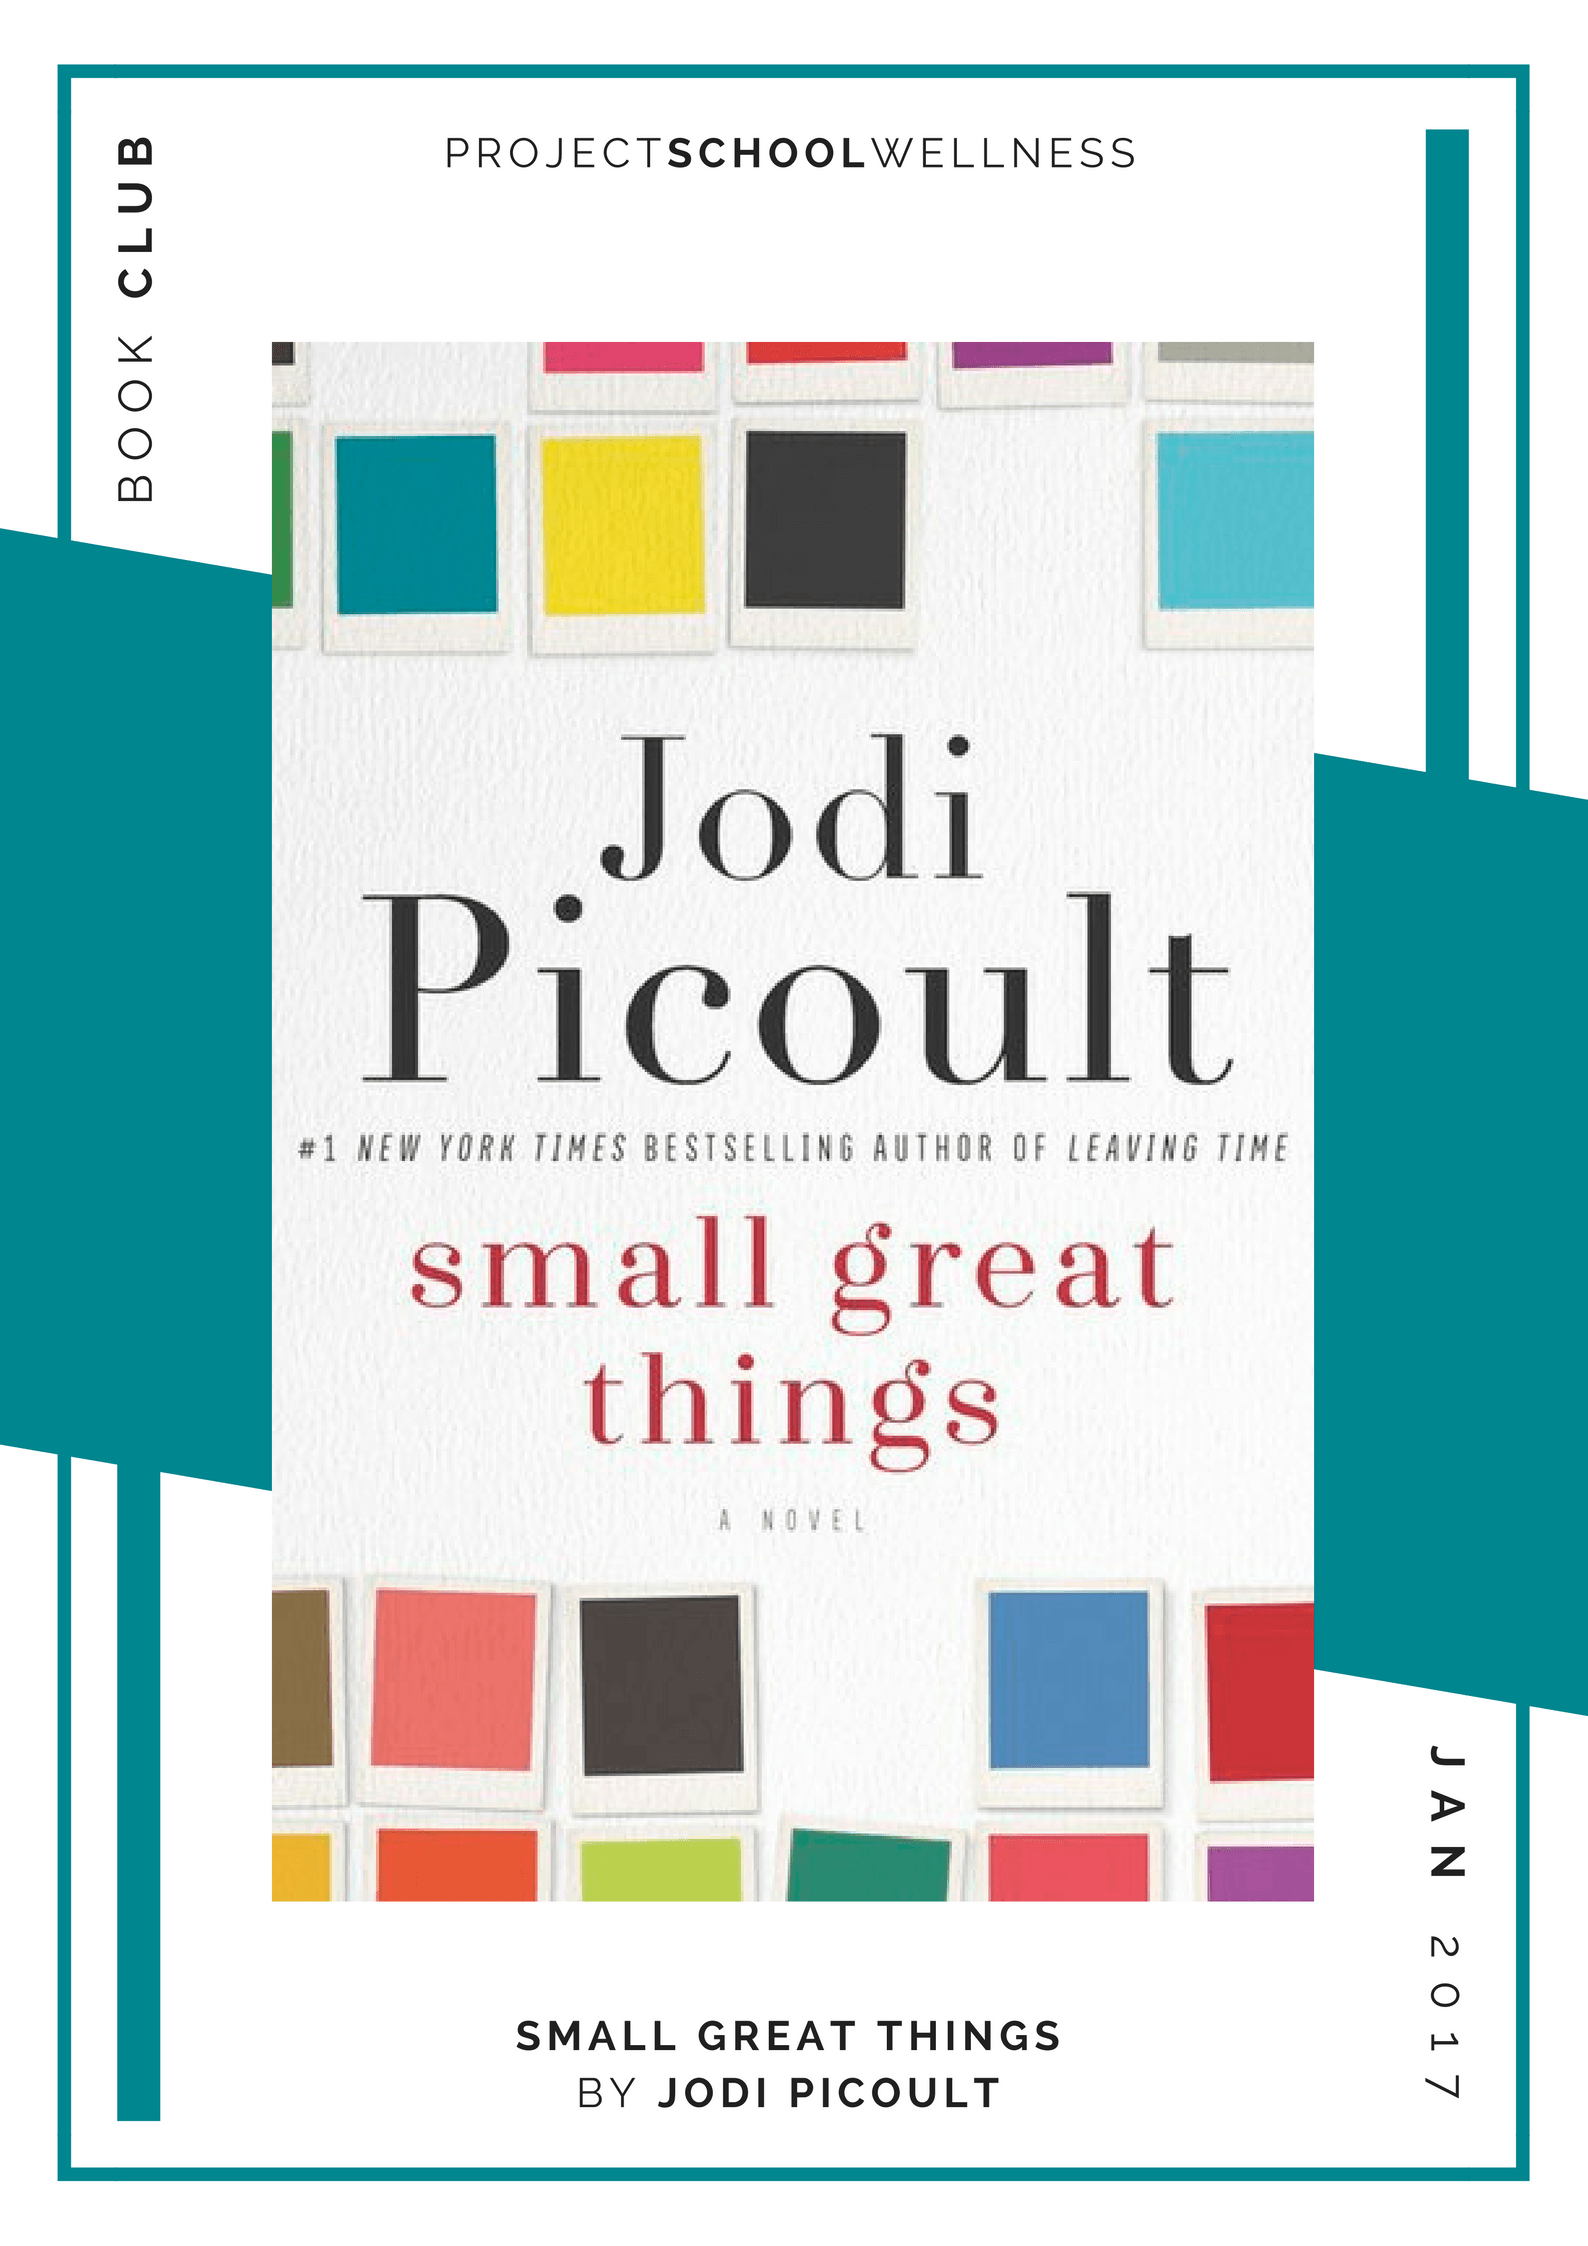 Jodi Picoult, Small Great Things - Project School Wellness' Teacher Book Club, must read books for every teacher!